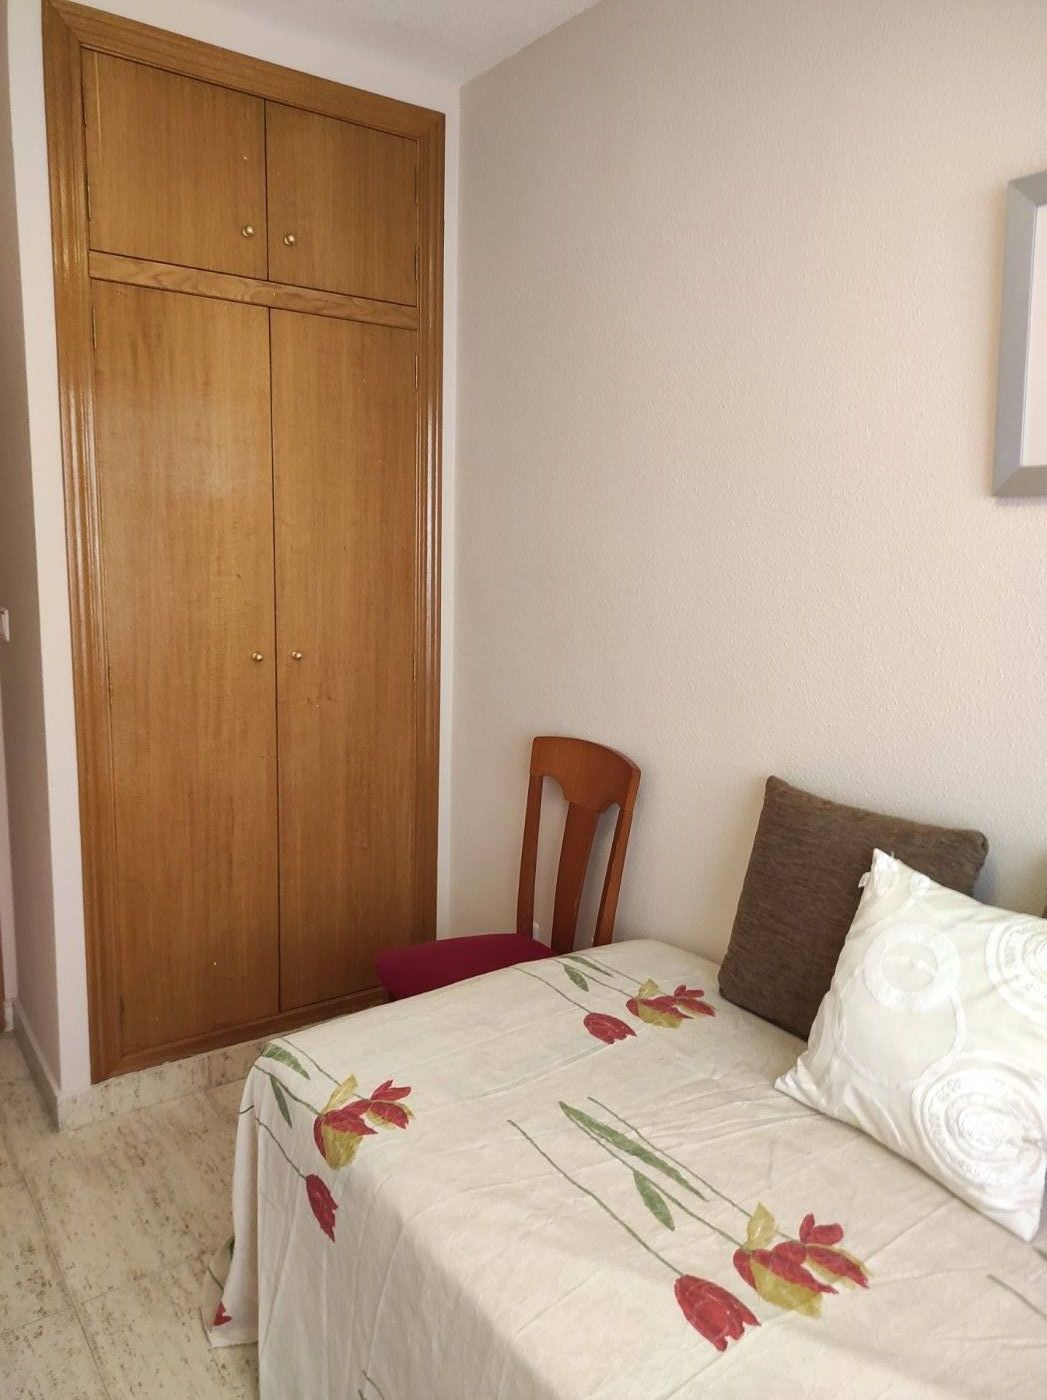 Gallery Image 3 of Flat For rent in Barrio Del Carmen, Murcia